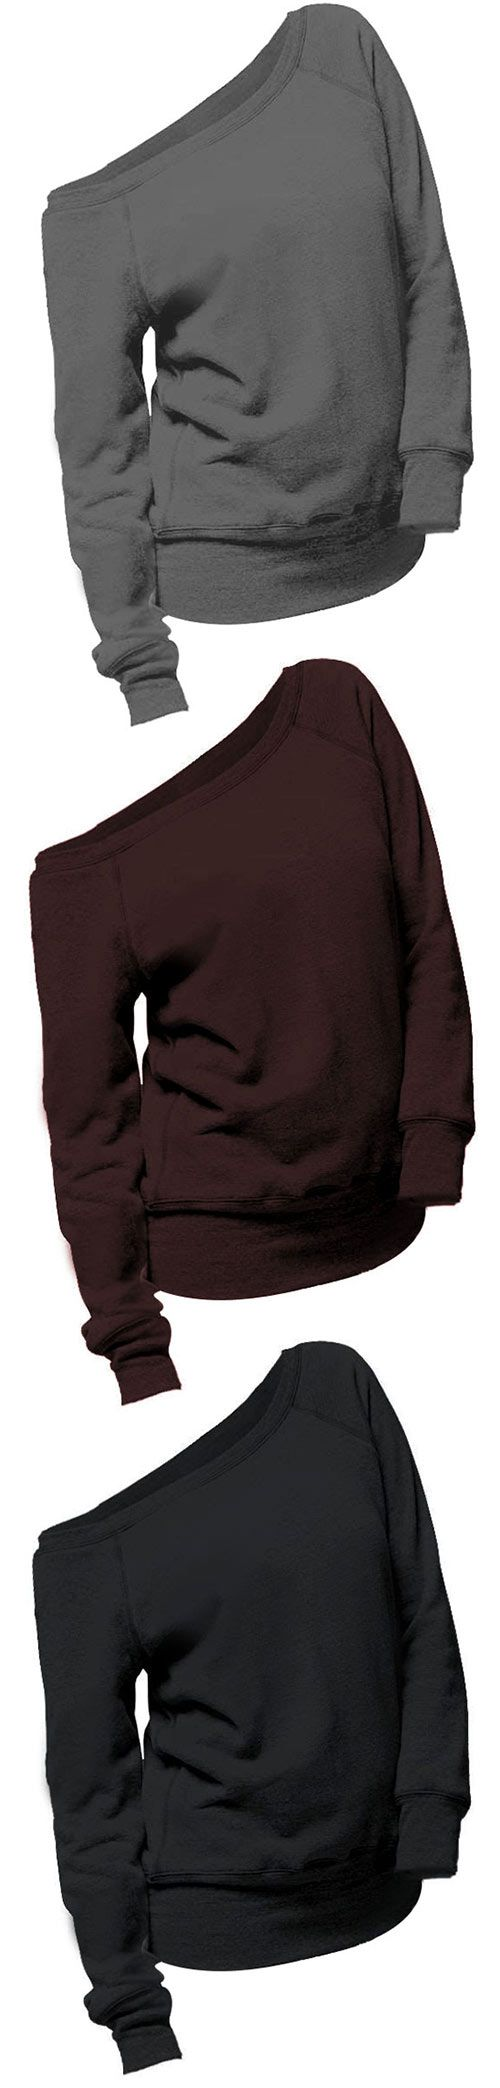 Catch it, Only $19.99 & Free Shipping. Easy Return + Refund! We love this one shoulder sweatshirt! The color is a great neutral and will go with so many outfits. Take some fall essentials to your wardrobe at Cupshe.com !